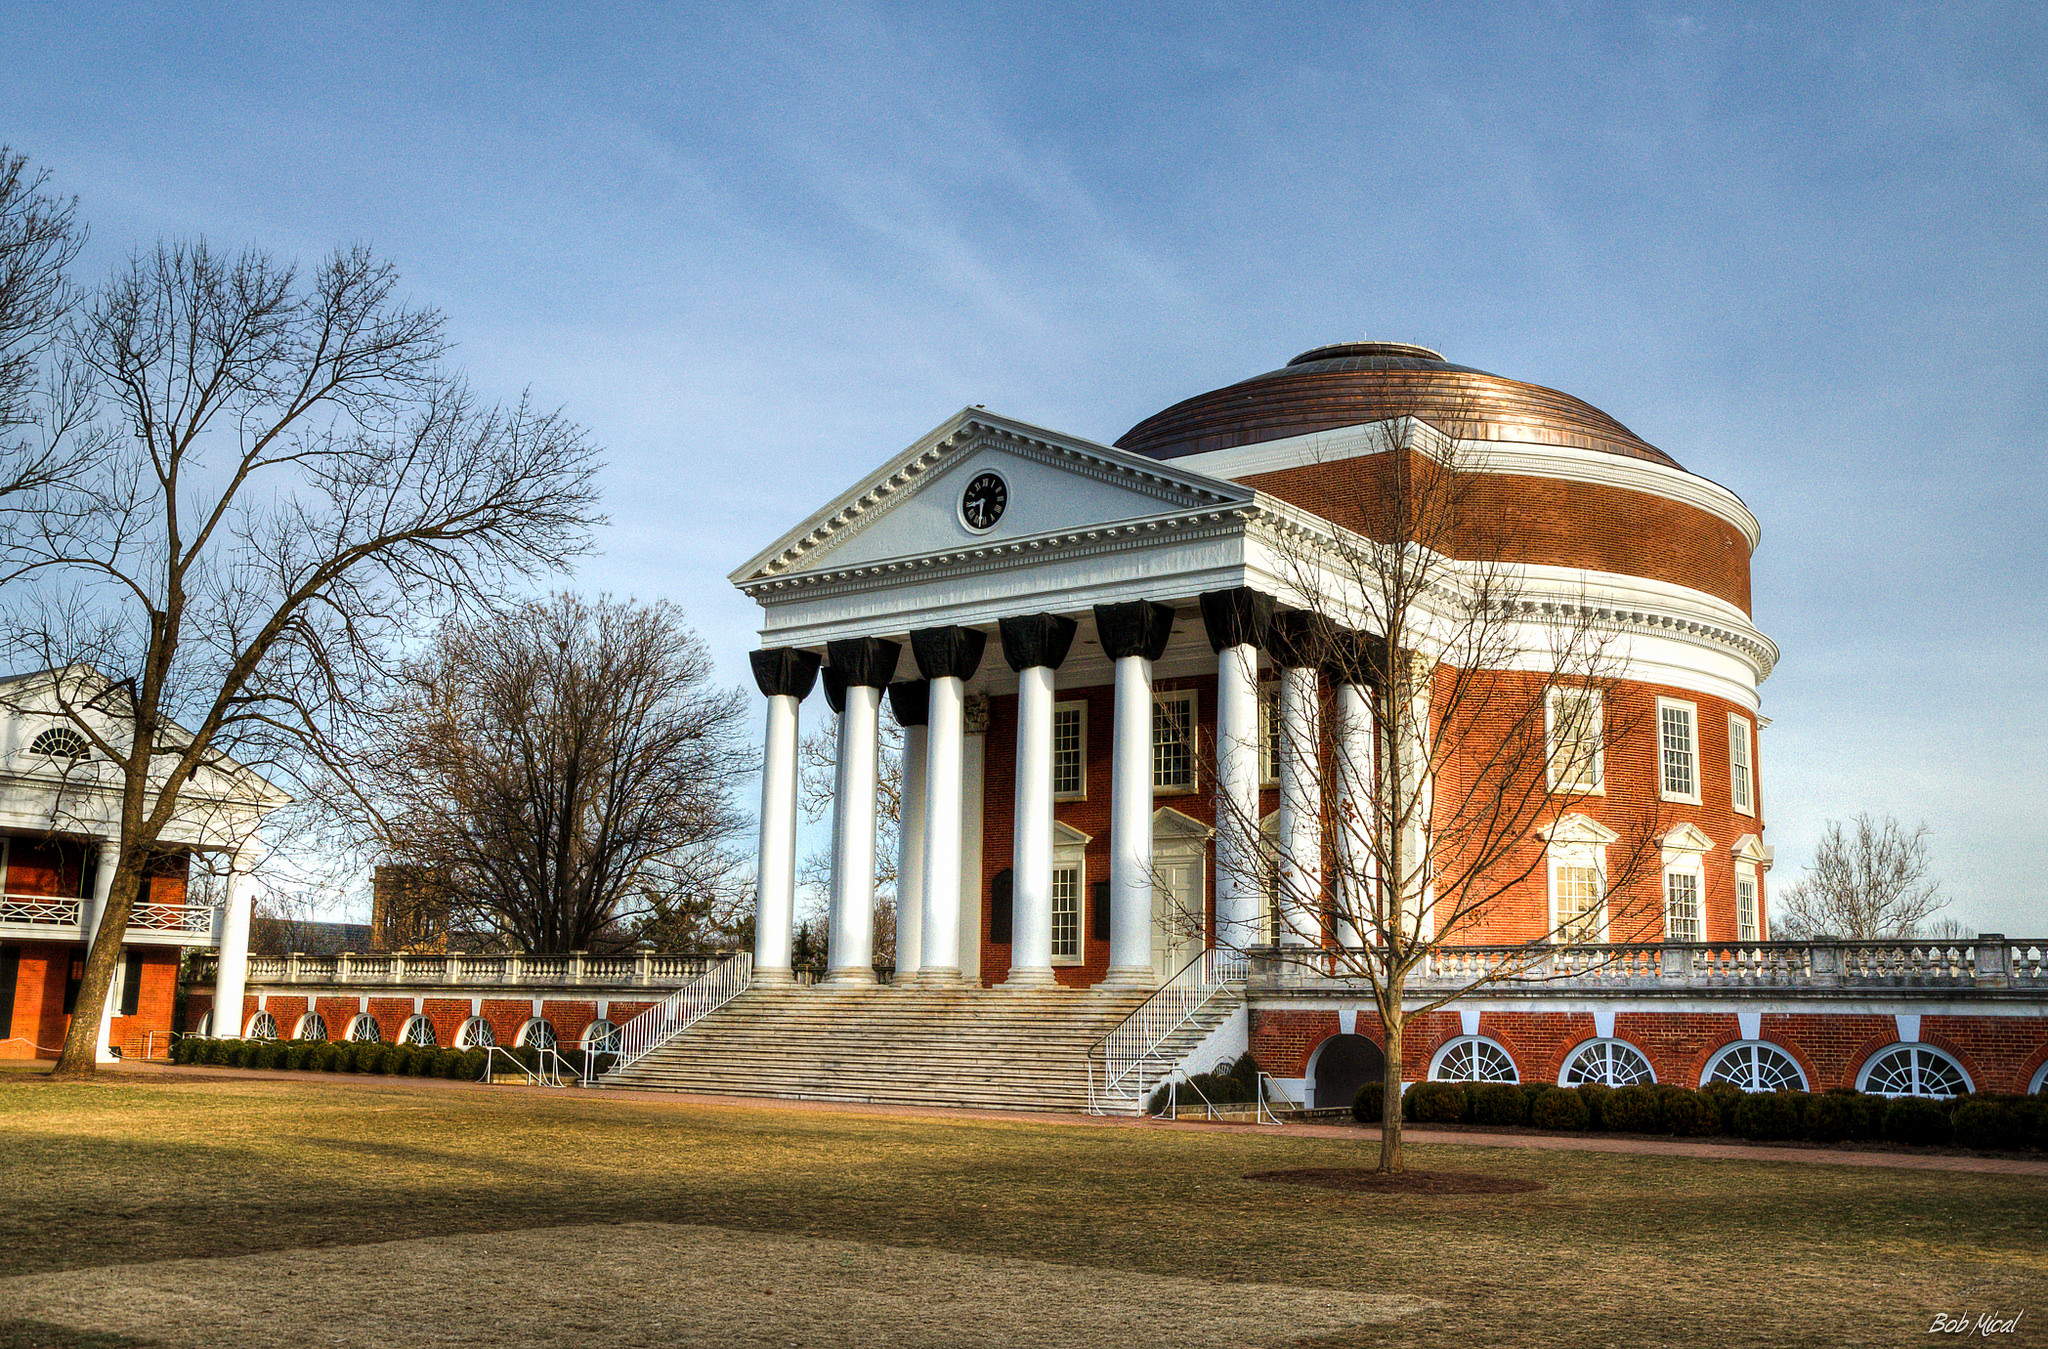 Kansas City Colleges >> 16 Historic Towns In Virginia That Transport You To The Past